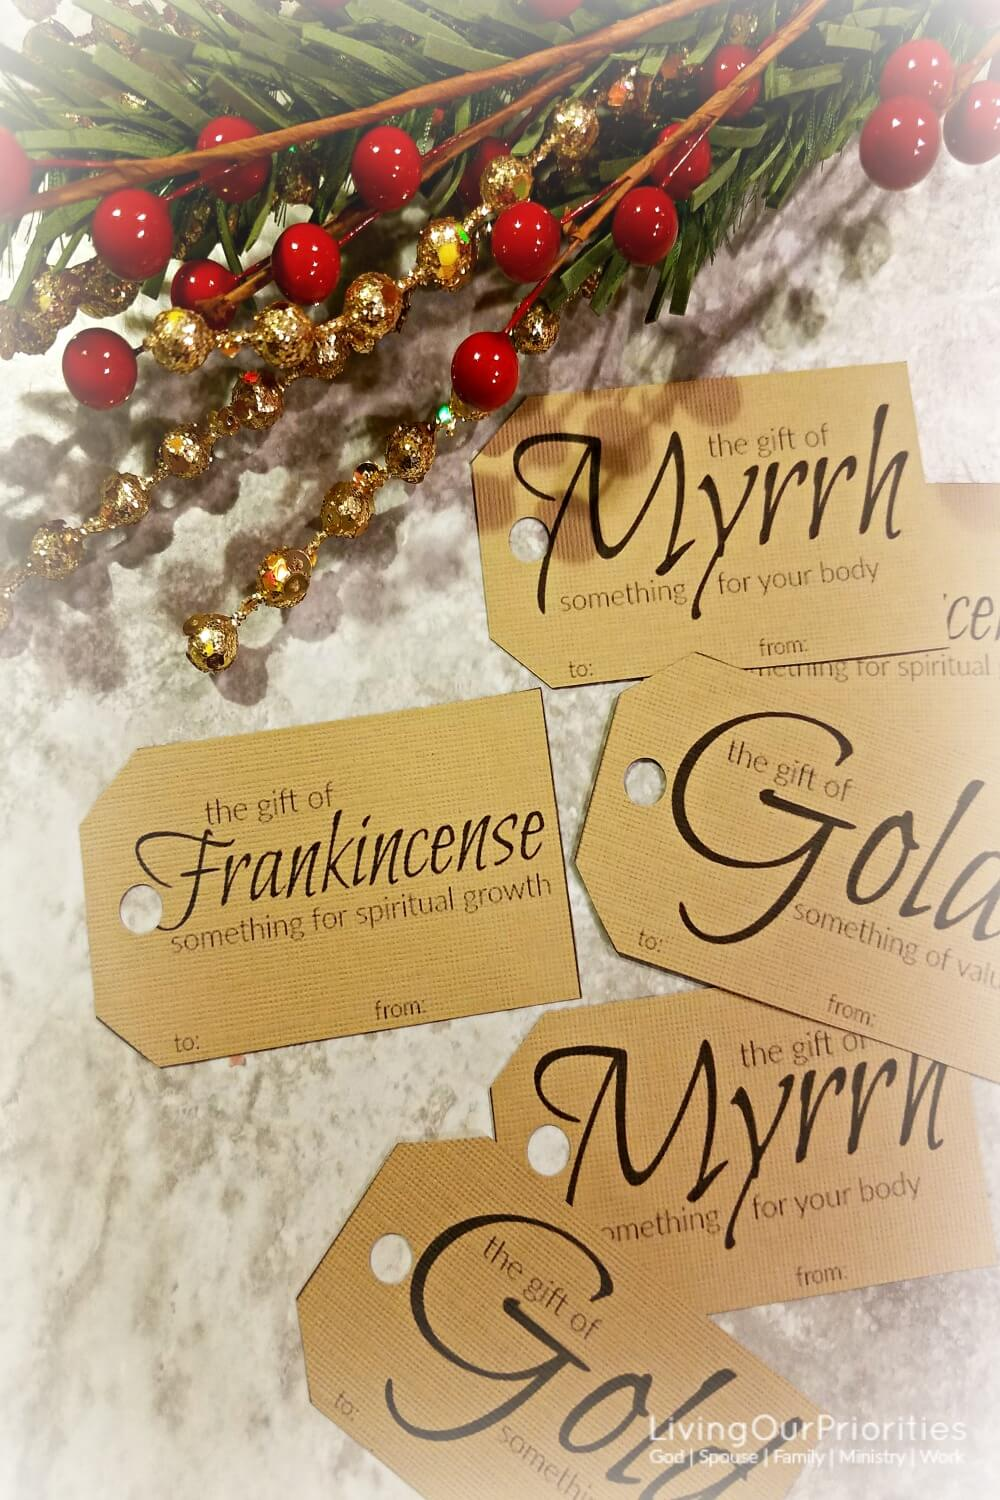 The wise men brought gifts that were purposeful and intentional to Christ. We too can give the gift of gold, frankincense and myrrh. Read more to learn how.